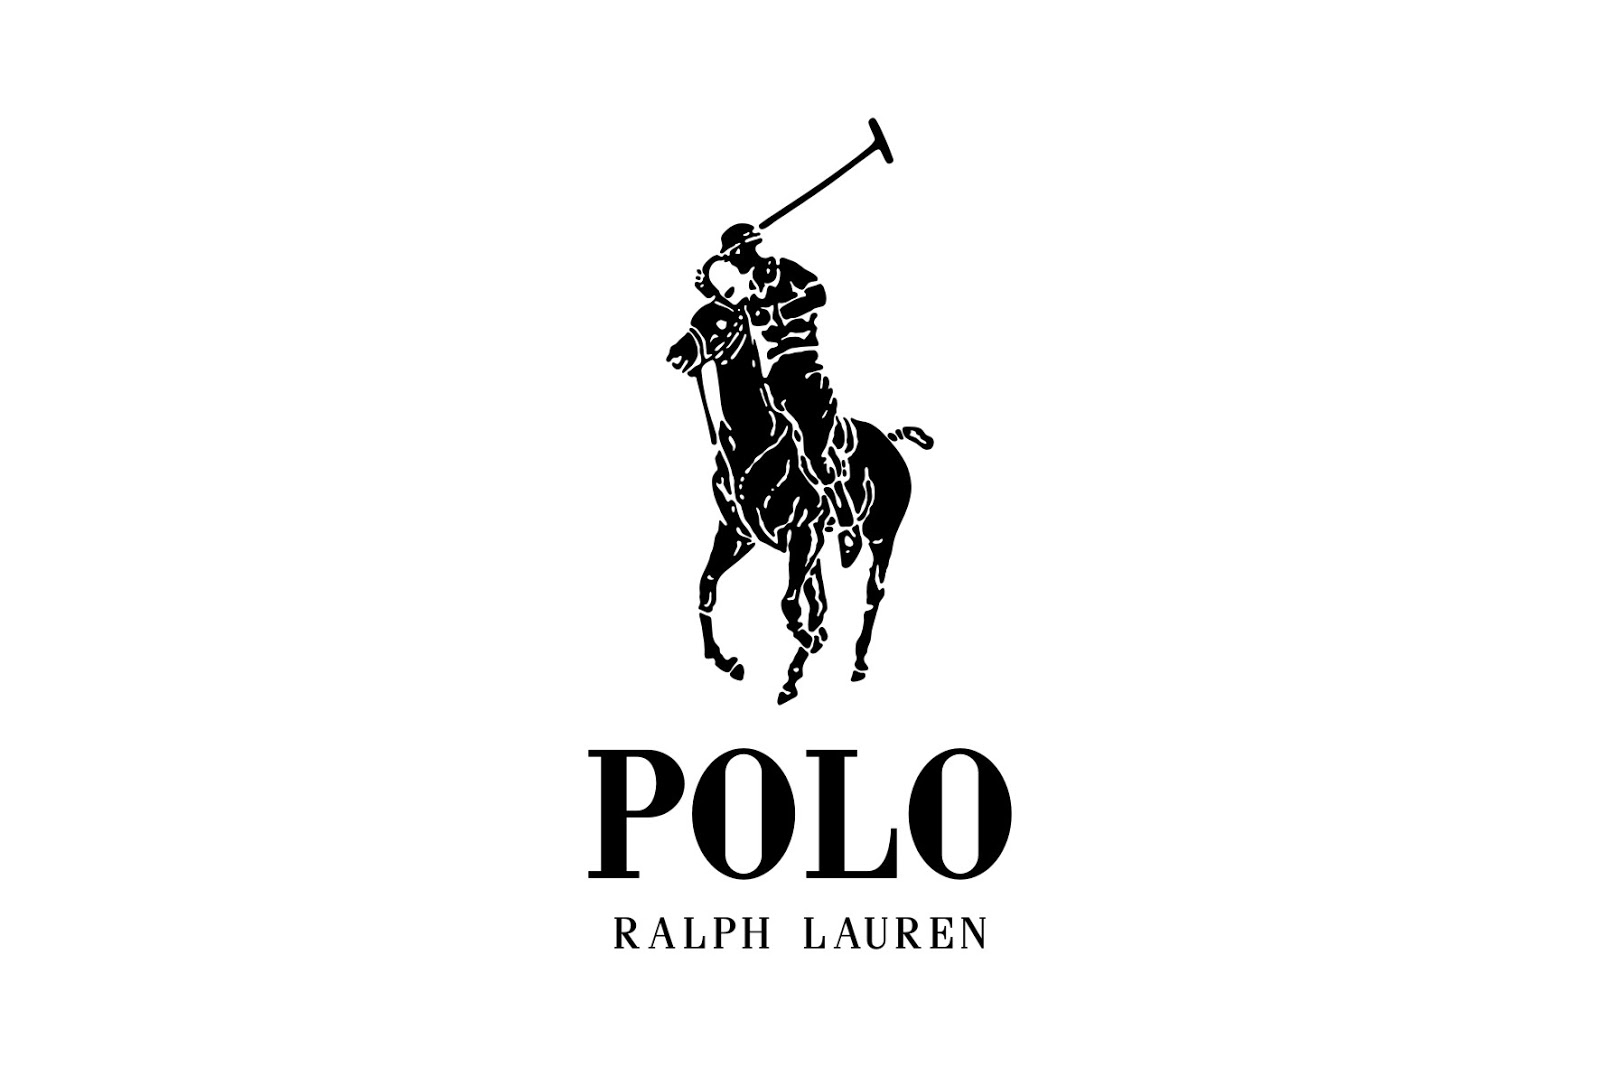 Equestrian Accessories Fashion – From Lauren It Houses Want Ralph wOkn0P